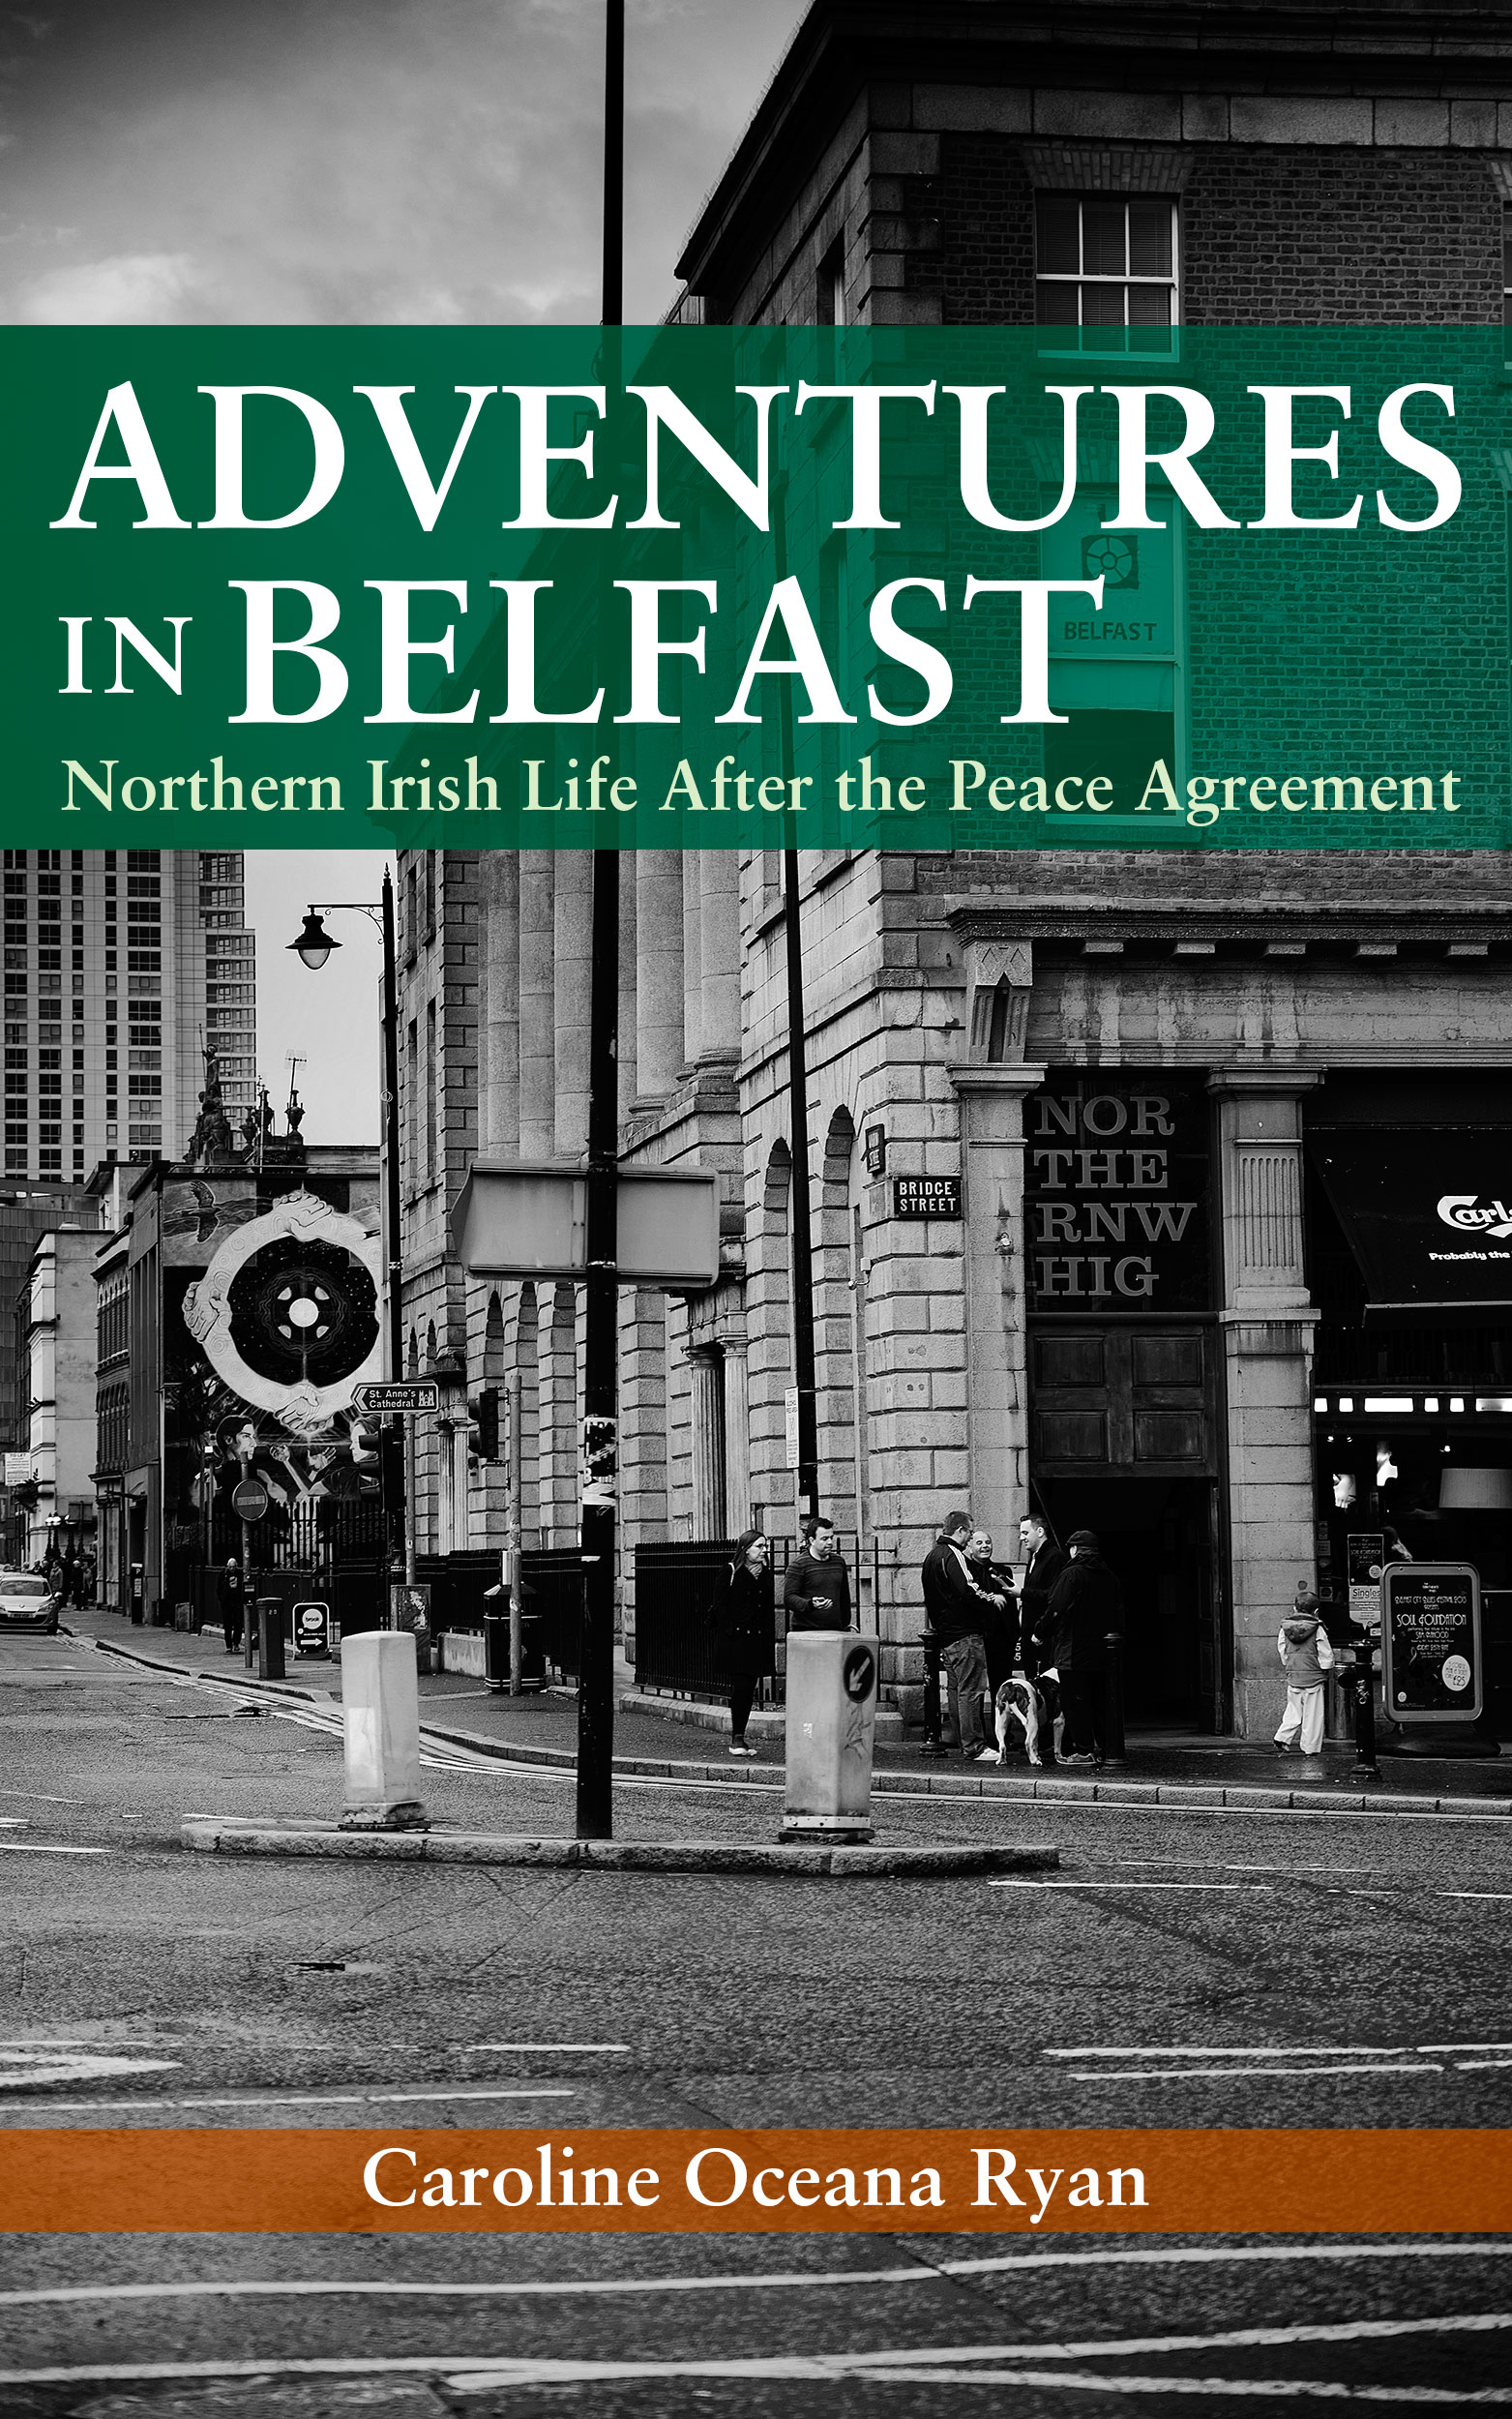 Belfast_Cover_3_large-title.jpg